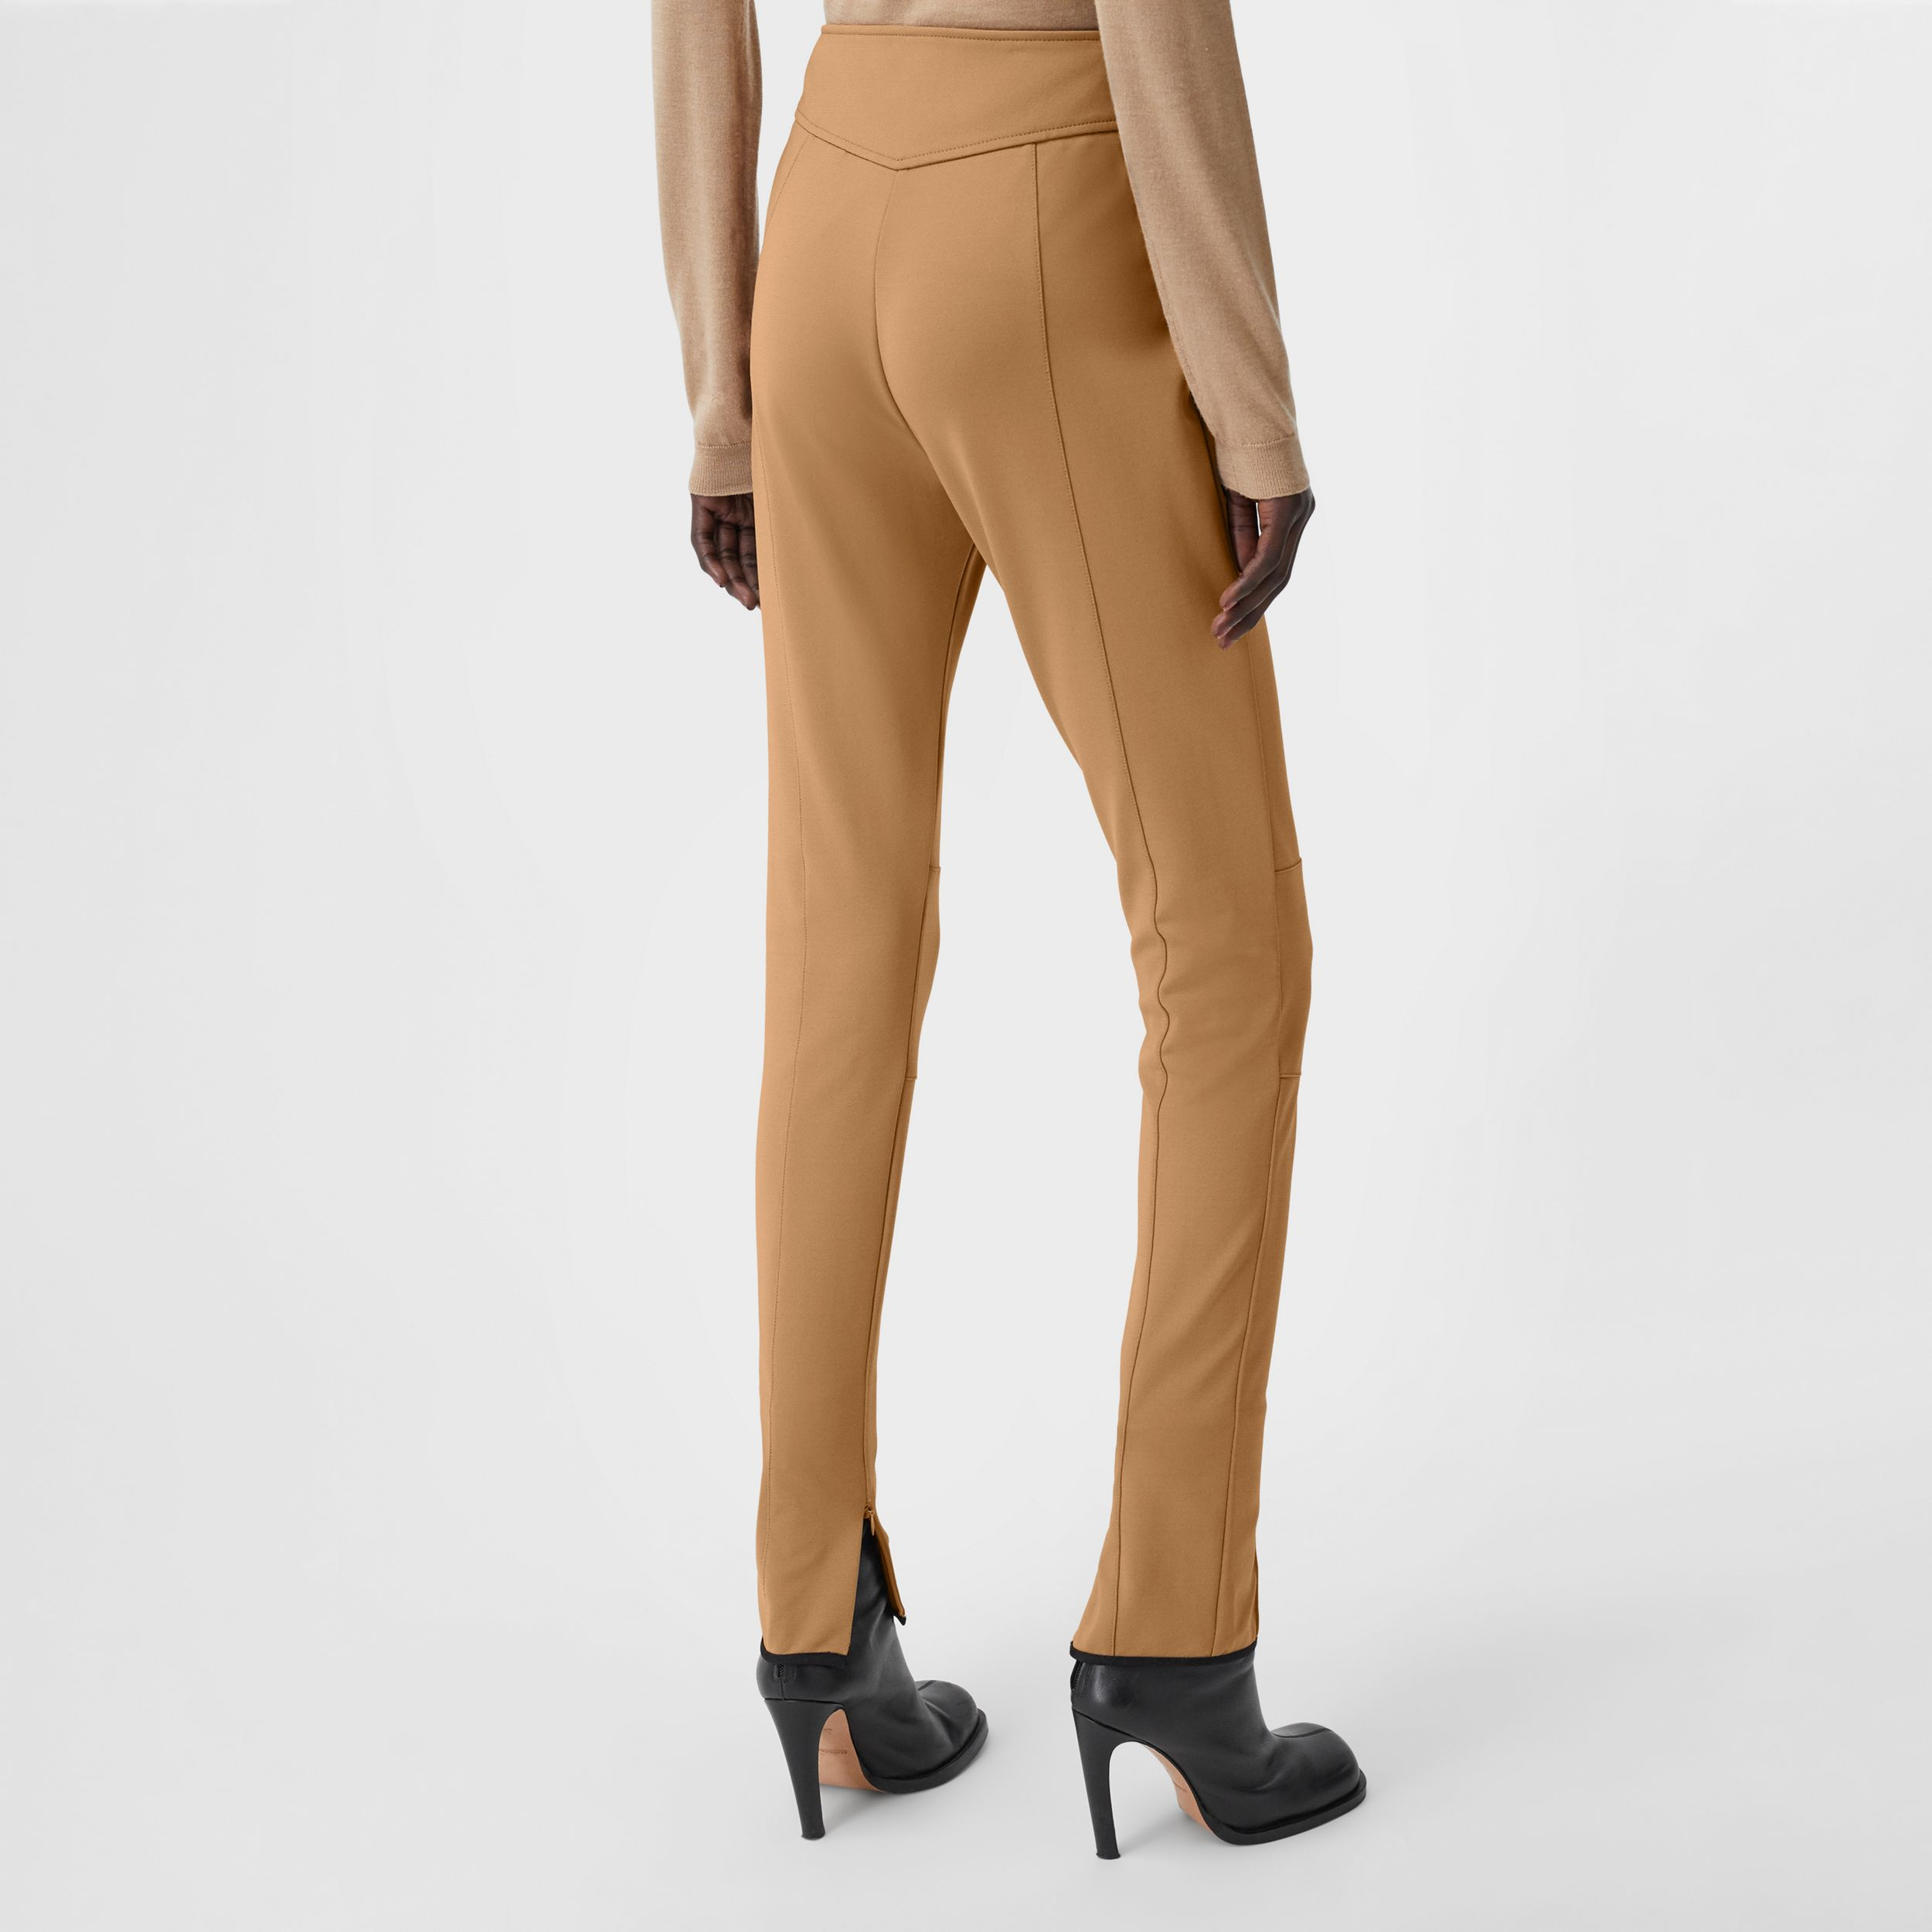 Stretch Crepe Jersey Jodhpurs in Dark Tan - Women | Burberry Canada - 3